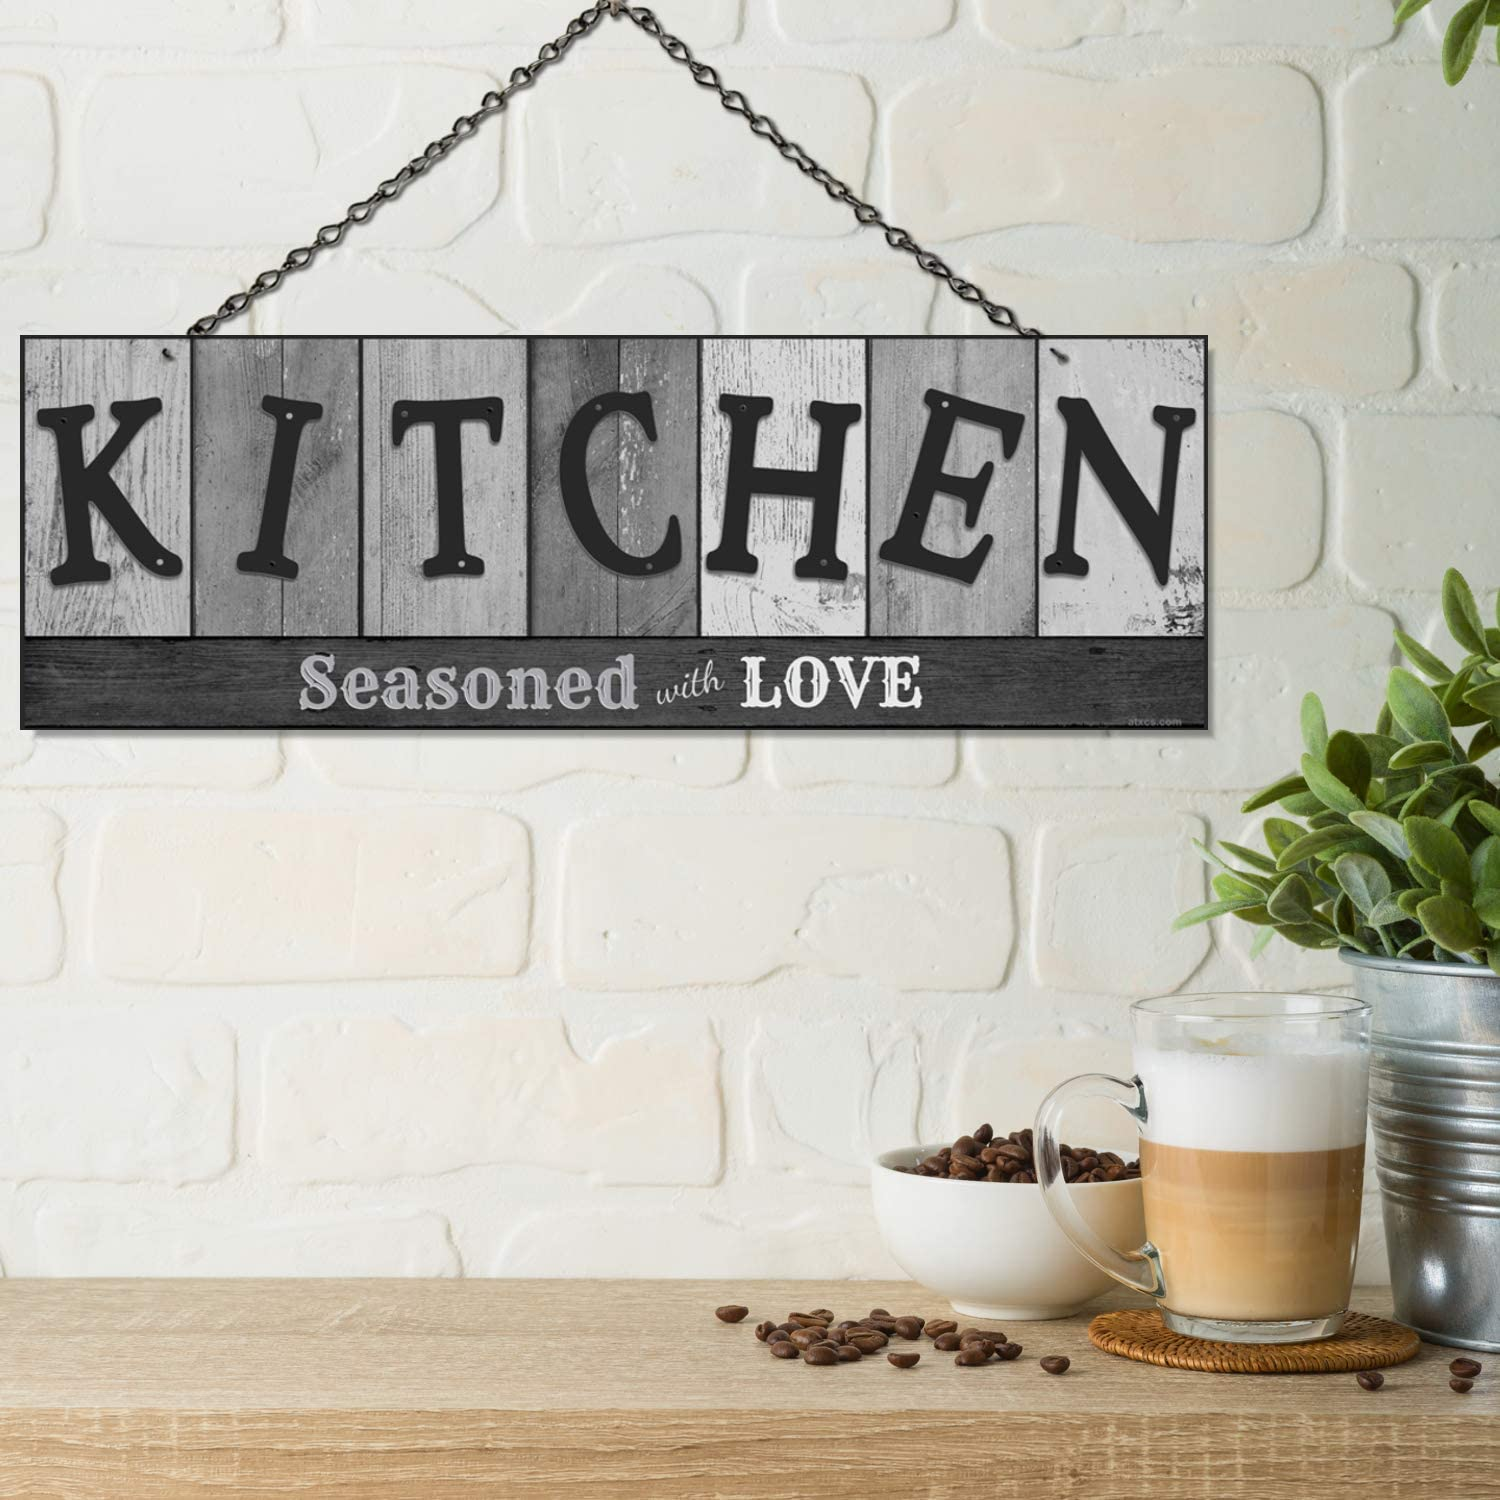 seasoned with love kitchen sign